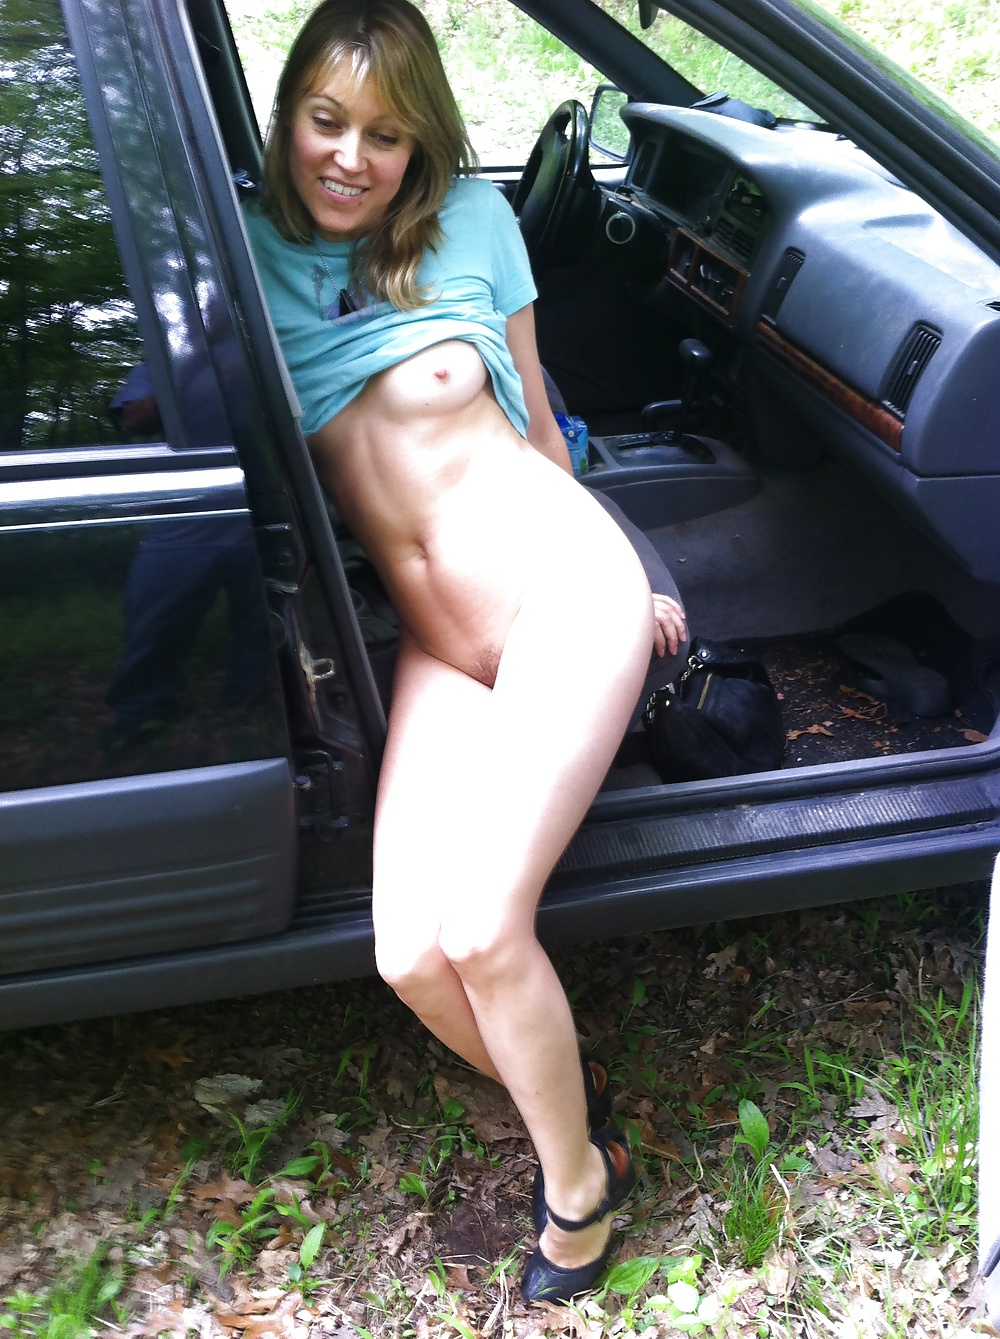 sexy naked girl in a car